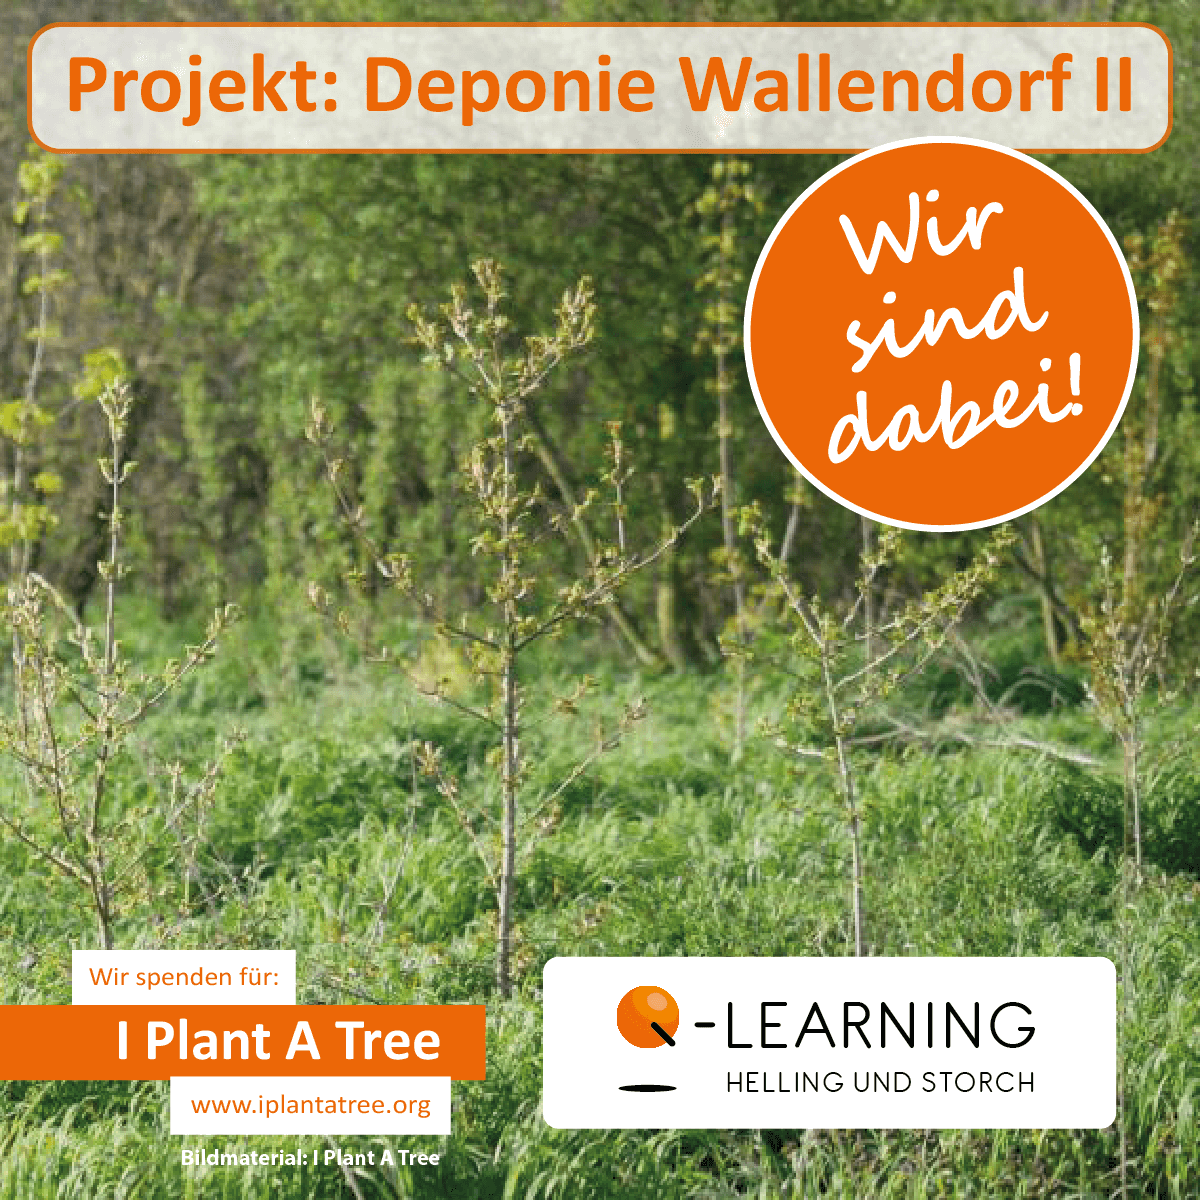 Q-LEARNING | I Plant A Tree Projekt Wallendorf II 2015